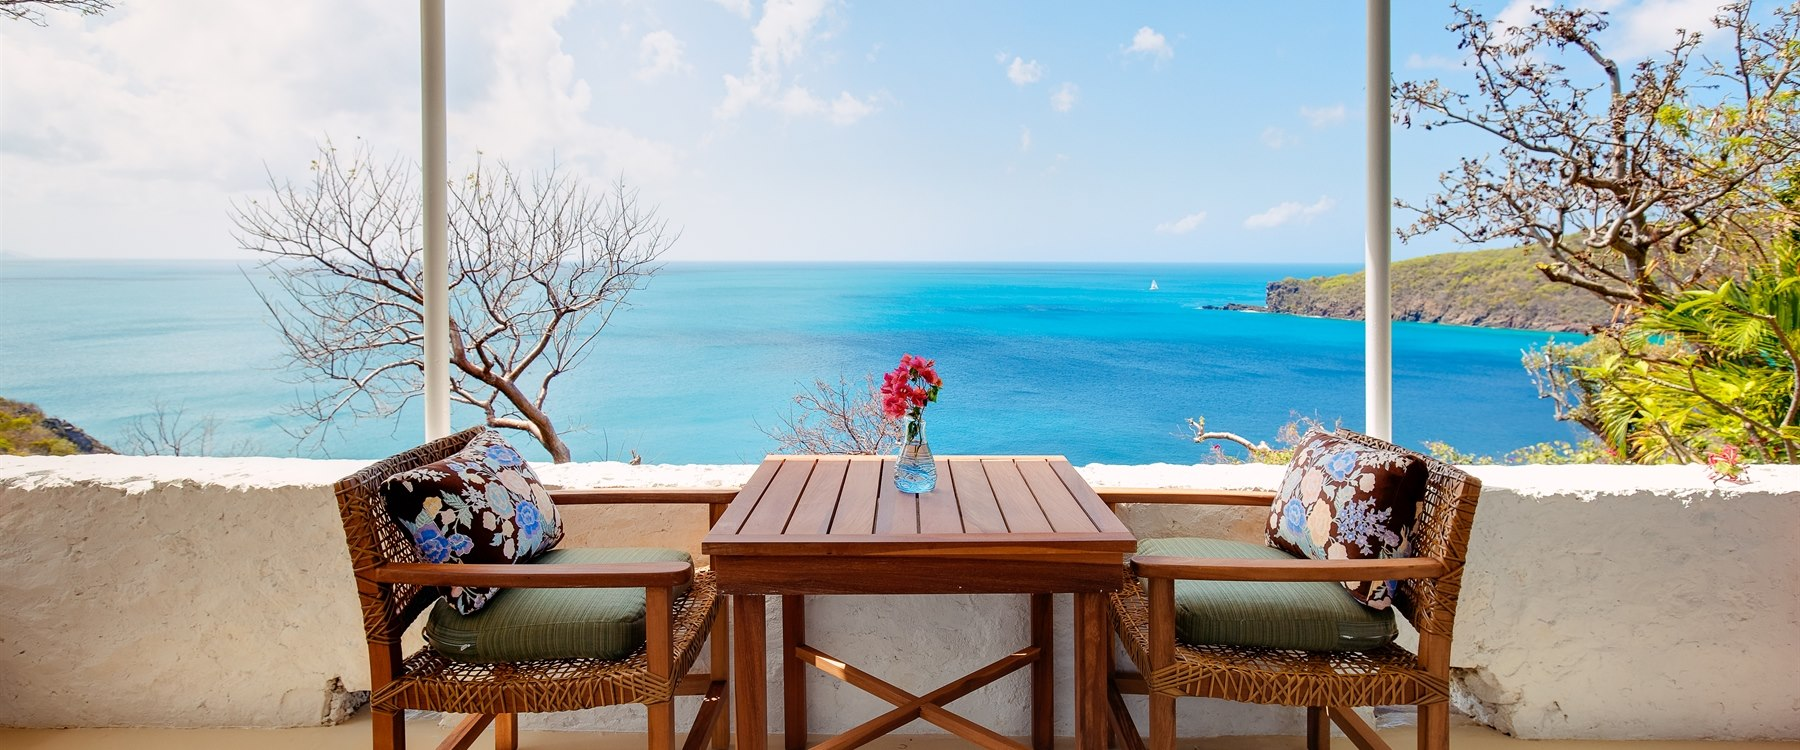 Terrace area of Sea View Room at Guana Island, British Virgin Islands